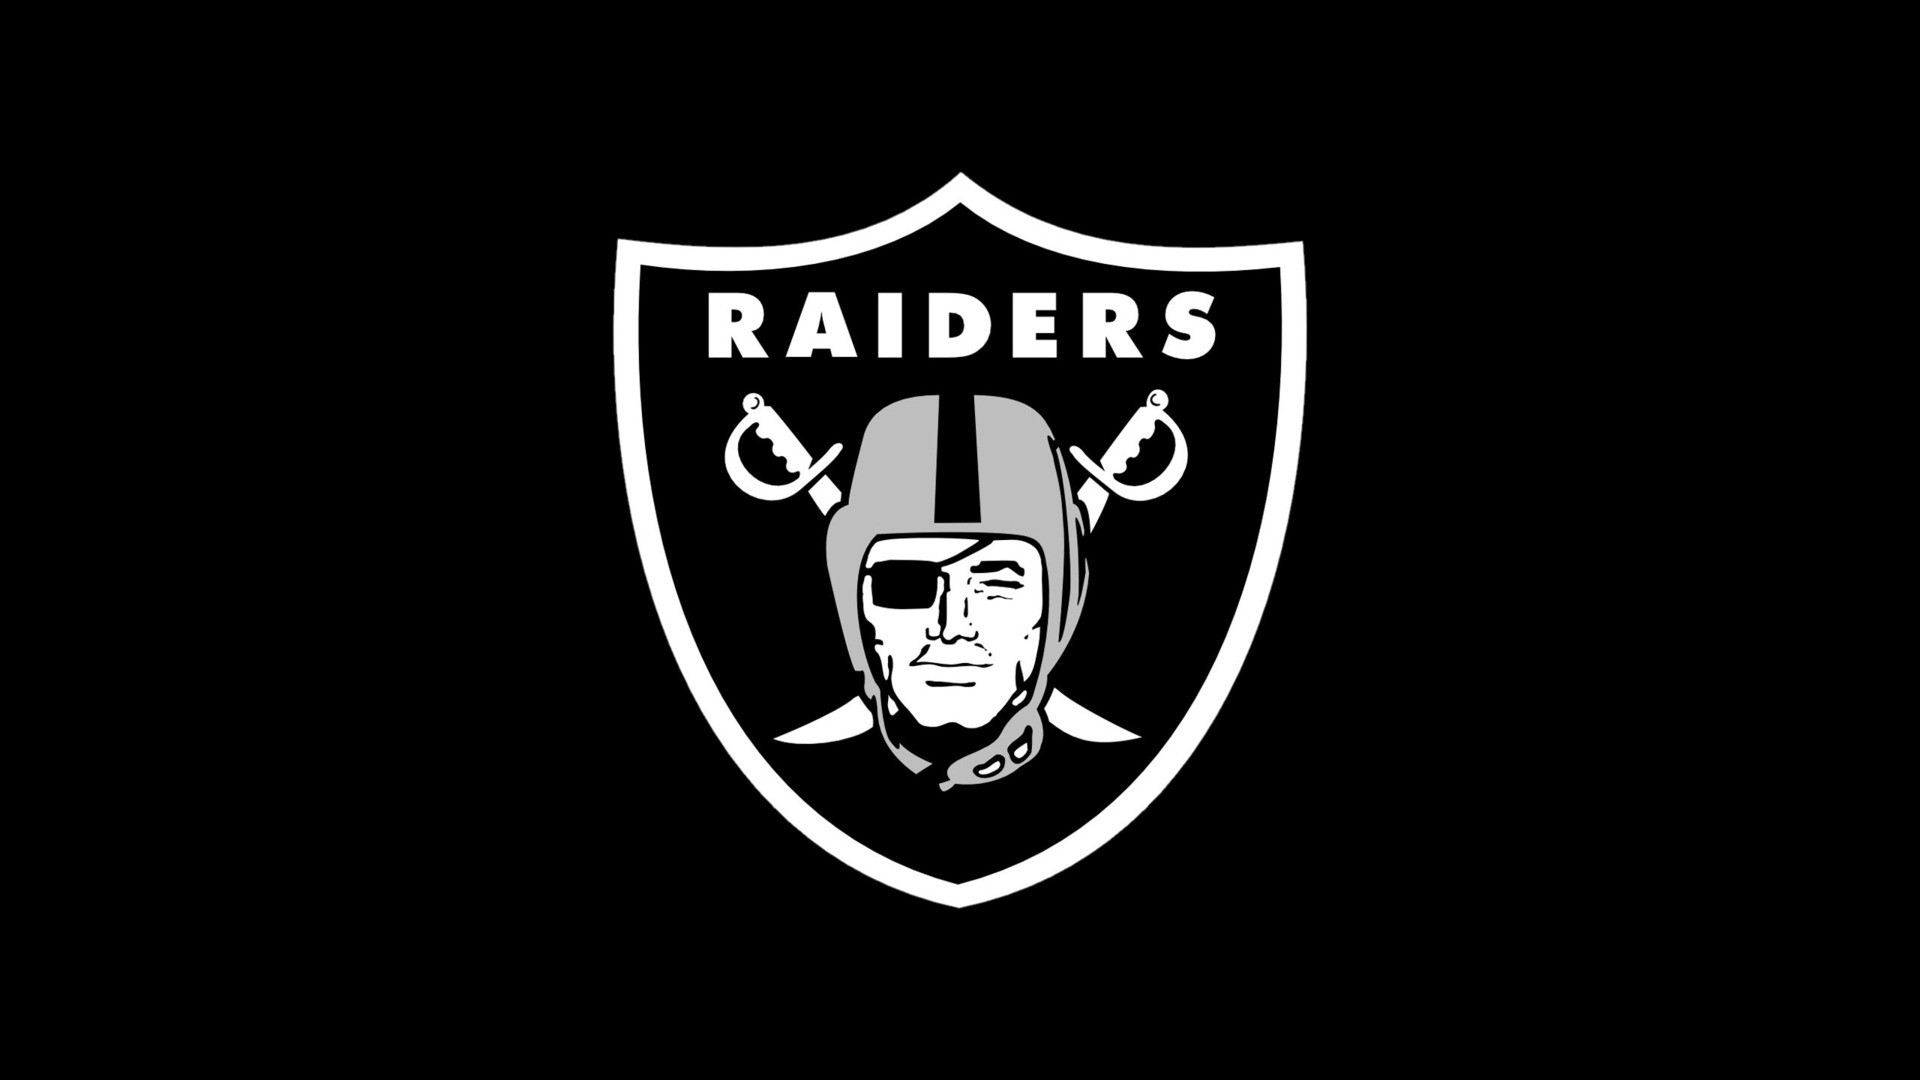 Oakland Raiders For PC Wallpaper with high-resolution 1920x1080 pixel. You can use this wallpaper for your Mac or Windows Desktop Background, iPhone, Android or Tablet and another Smartphone device